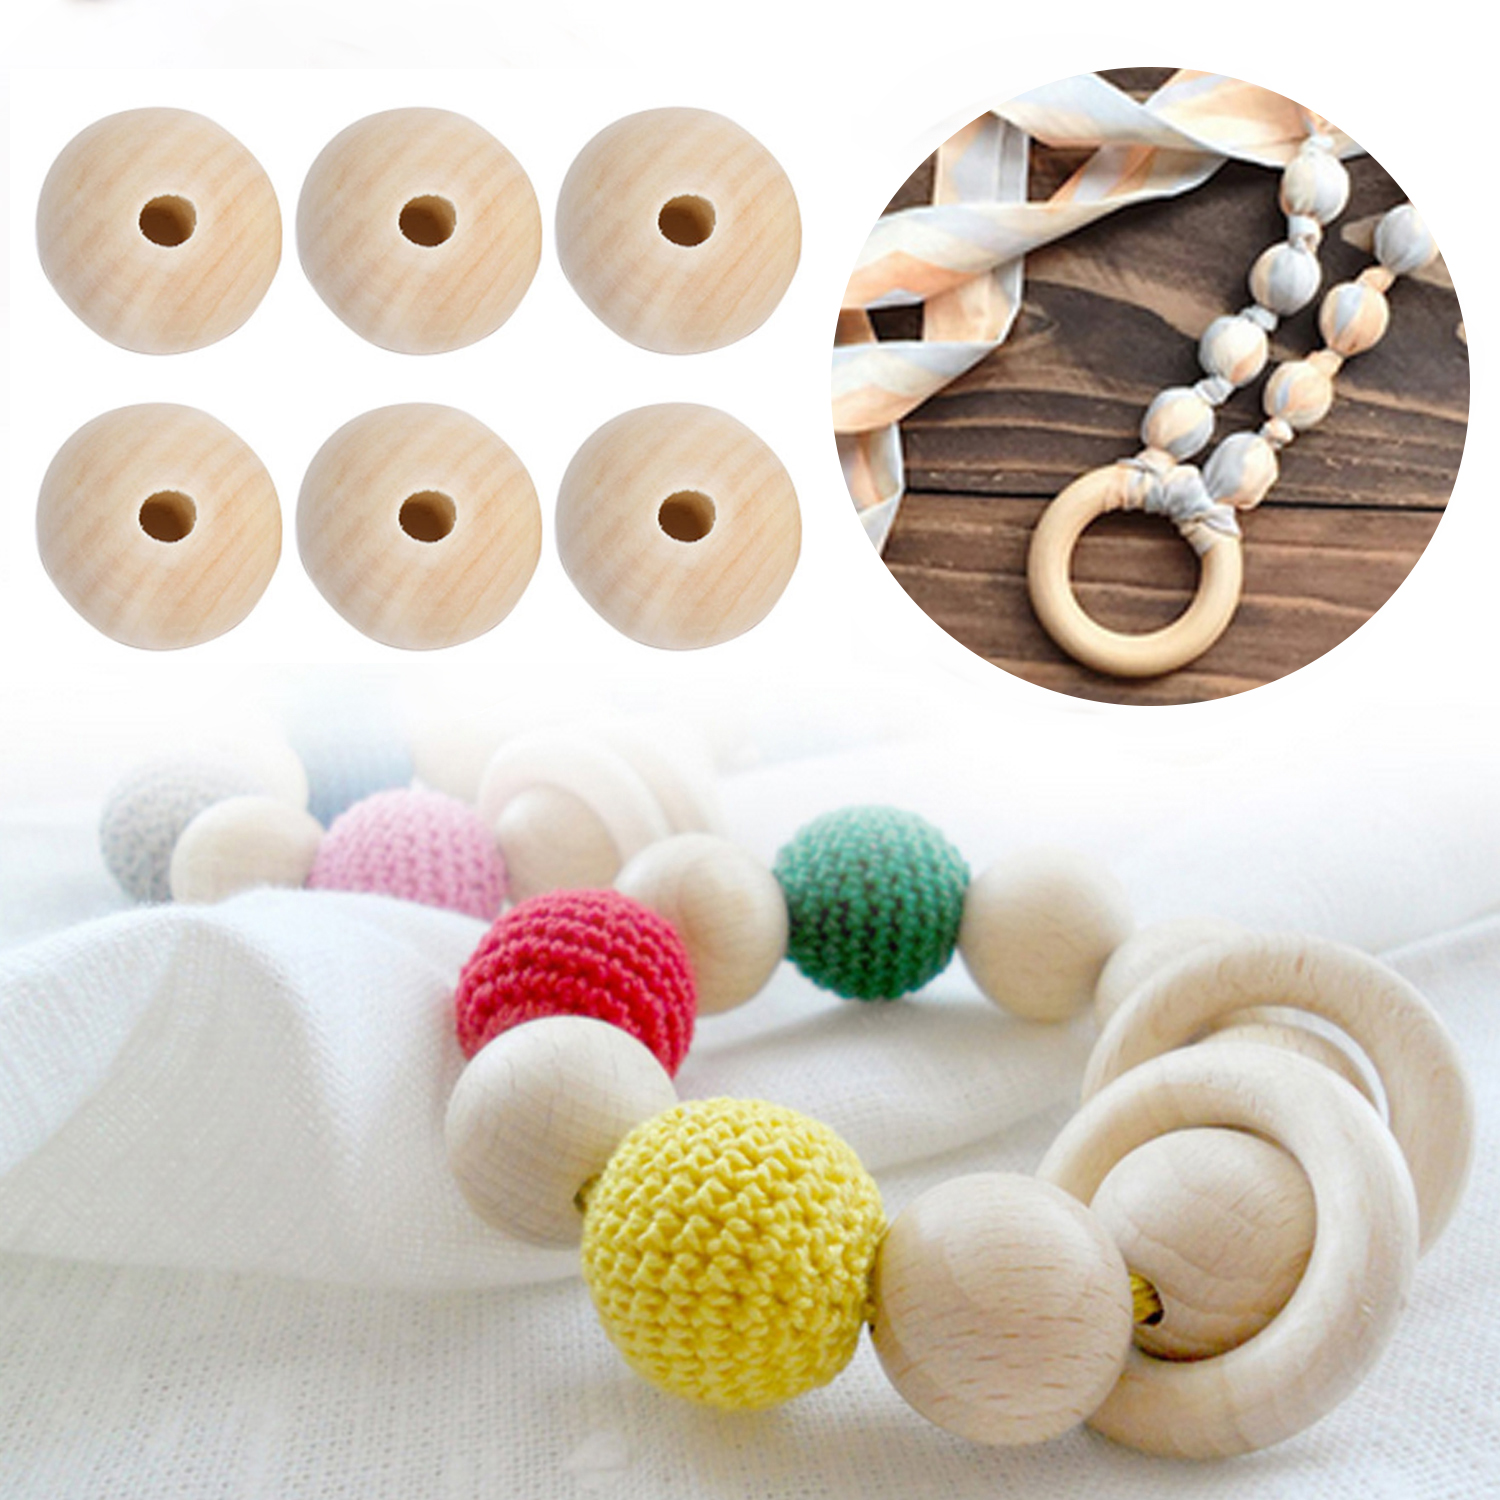 Kids 50pcs 20mm Unfinished Round Natural Wood Beads Loose Wooden Bead Ball Spacer DIY Wooden Making Bracelet Jewelry Beading Toy